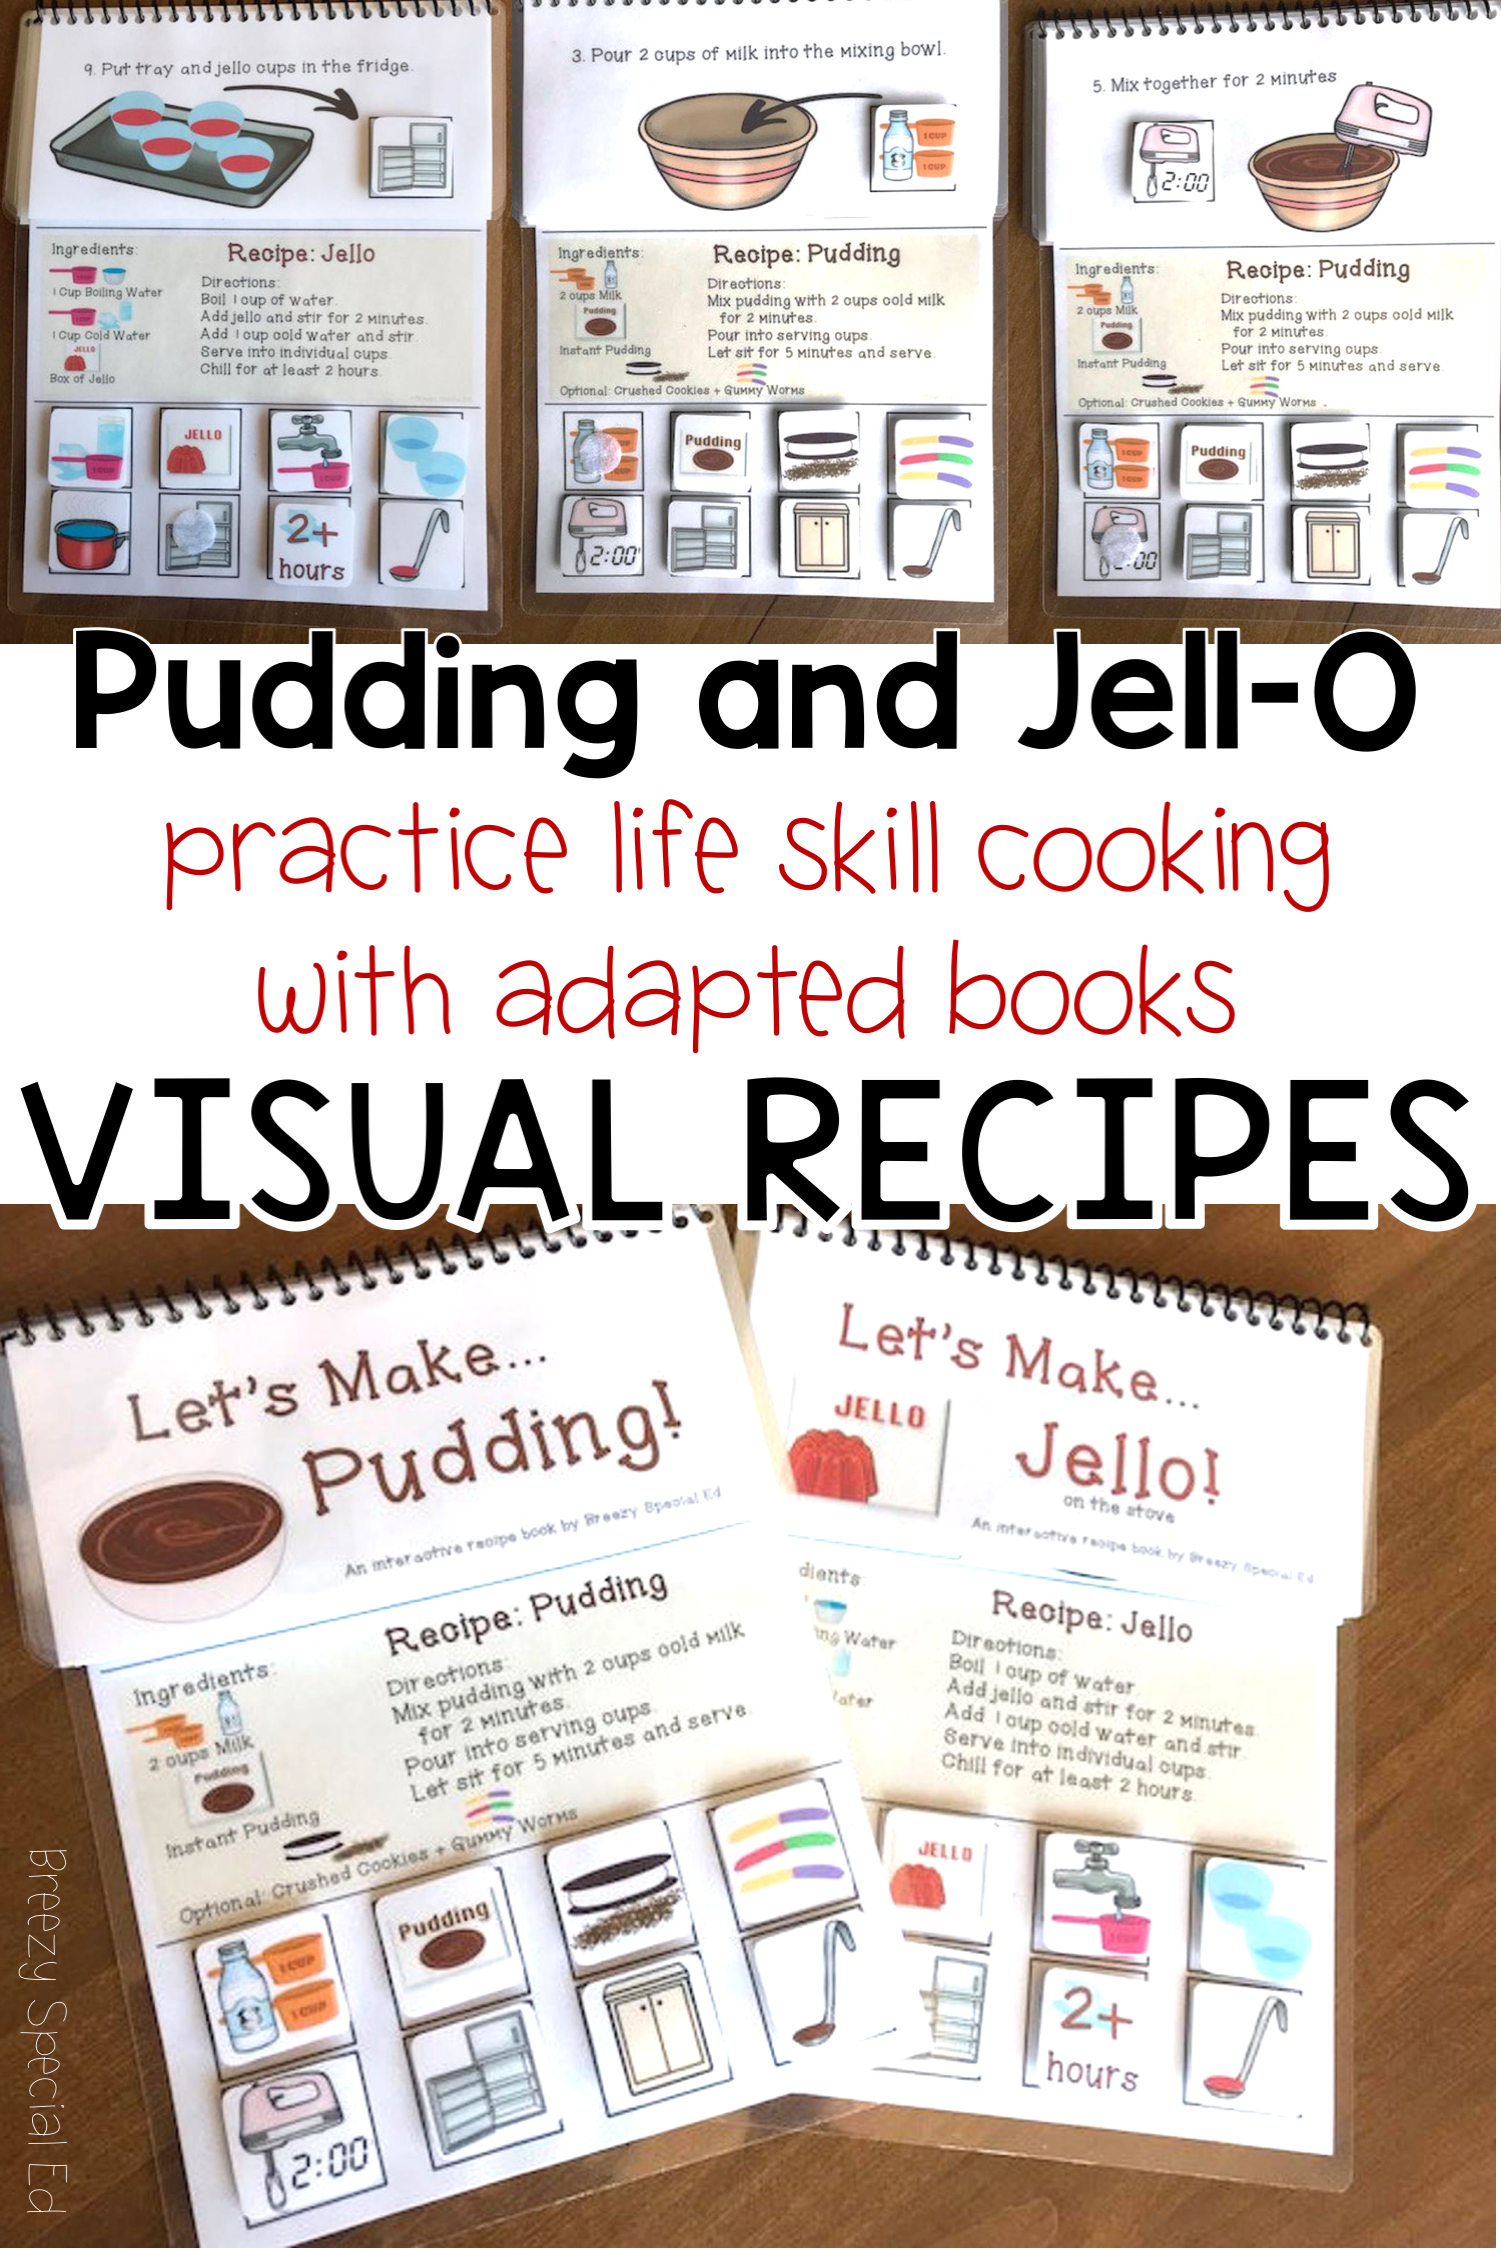 Interactive Cooking Lessons Visual Recipes For Pudding